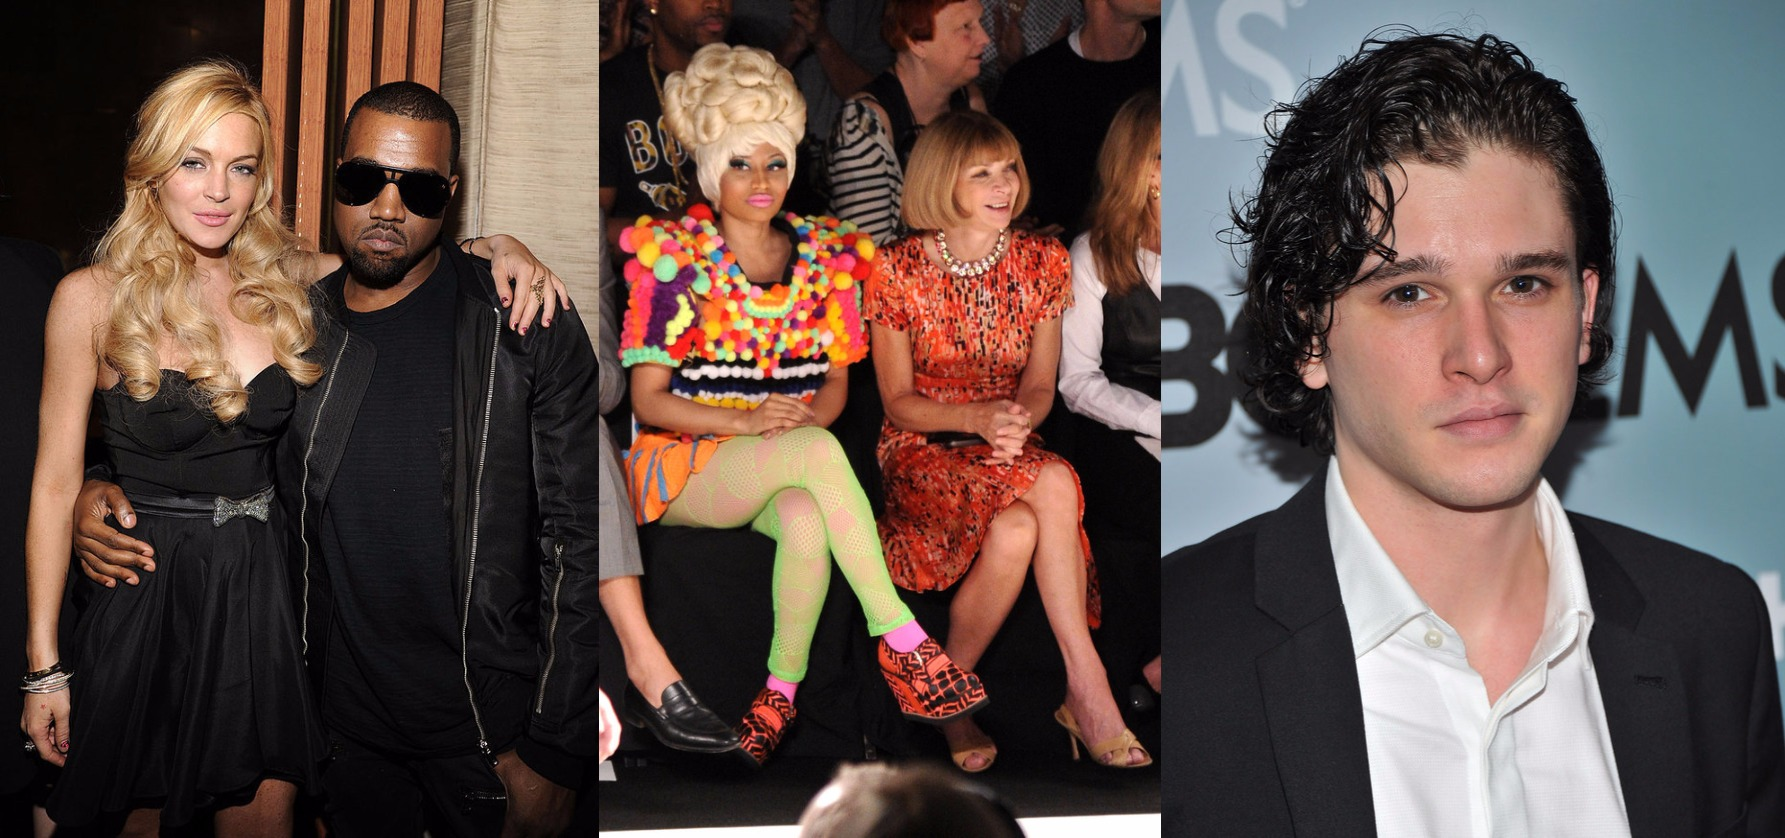 27 Shocking Celebrity Pictures Prove How Much The World Has Changed in 5 Years